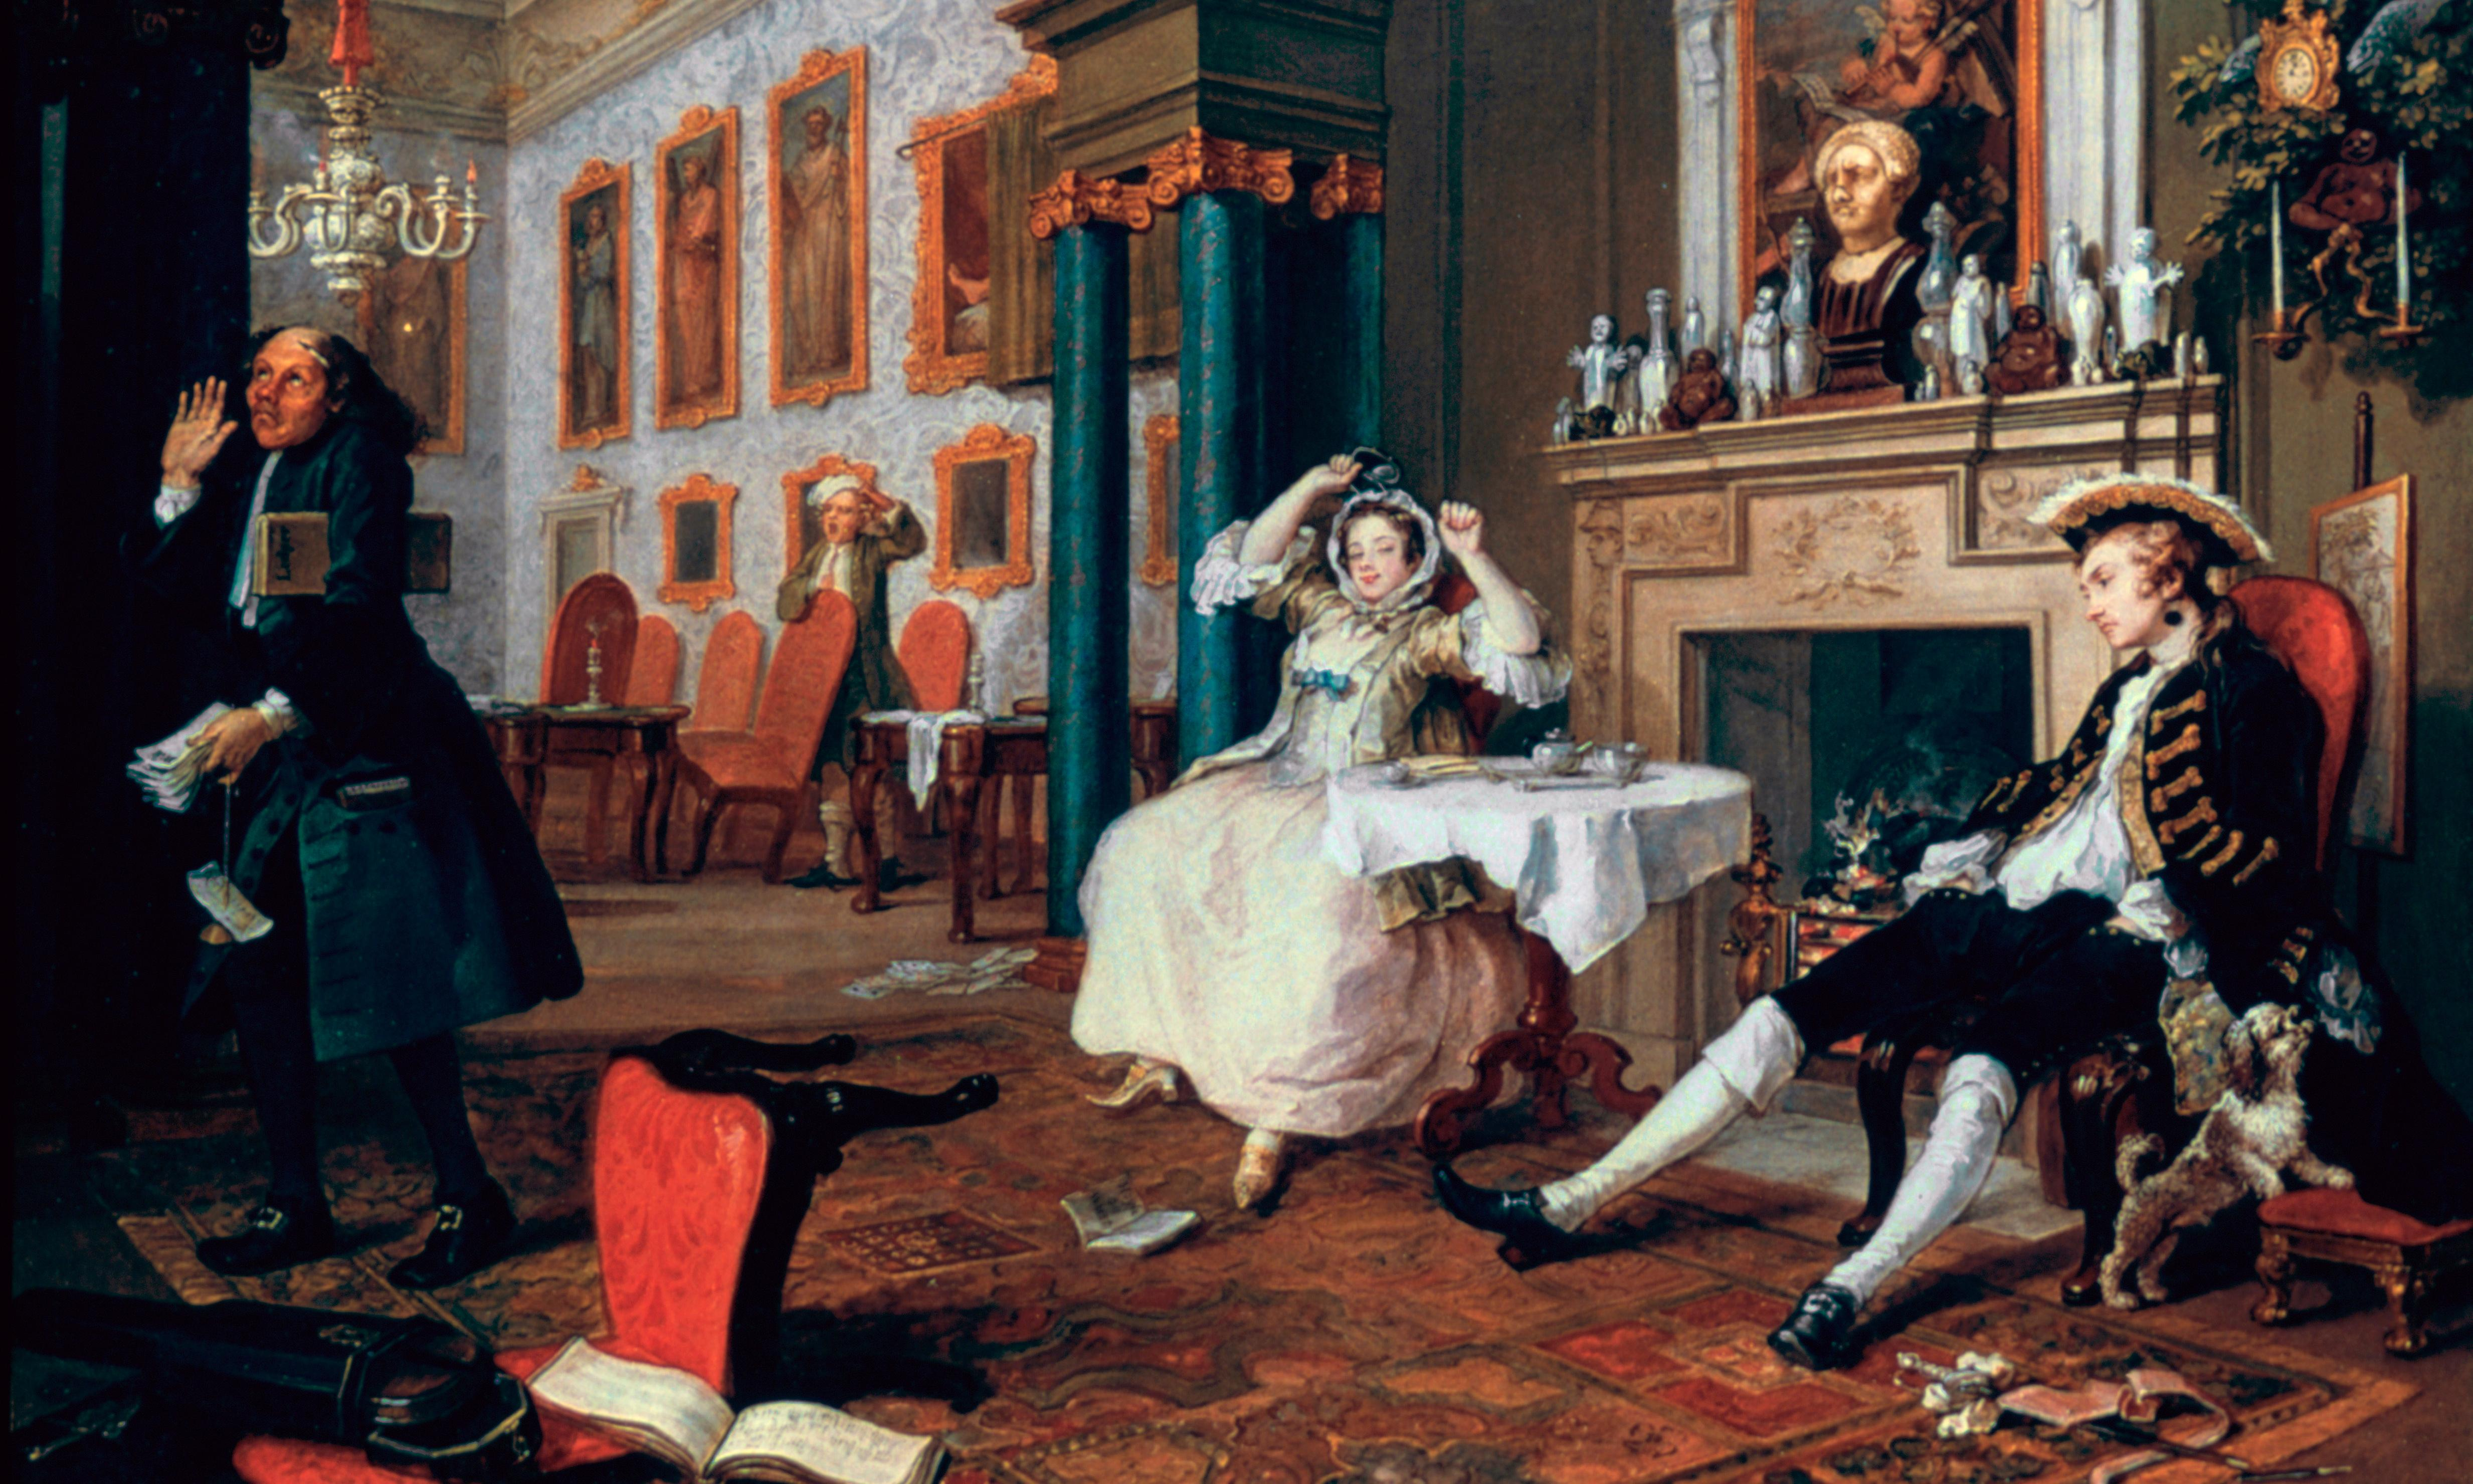 Gin, syphilis, lunacy: Hogarth's grotesques united in new show